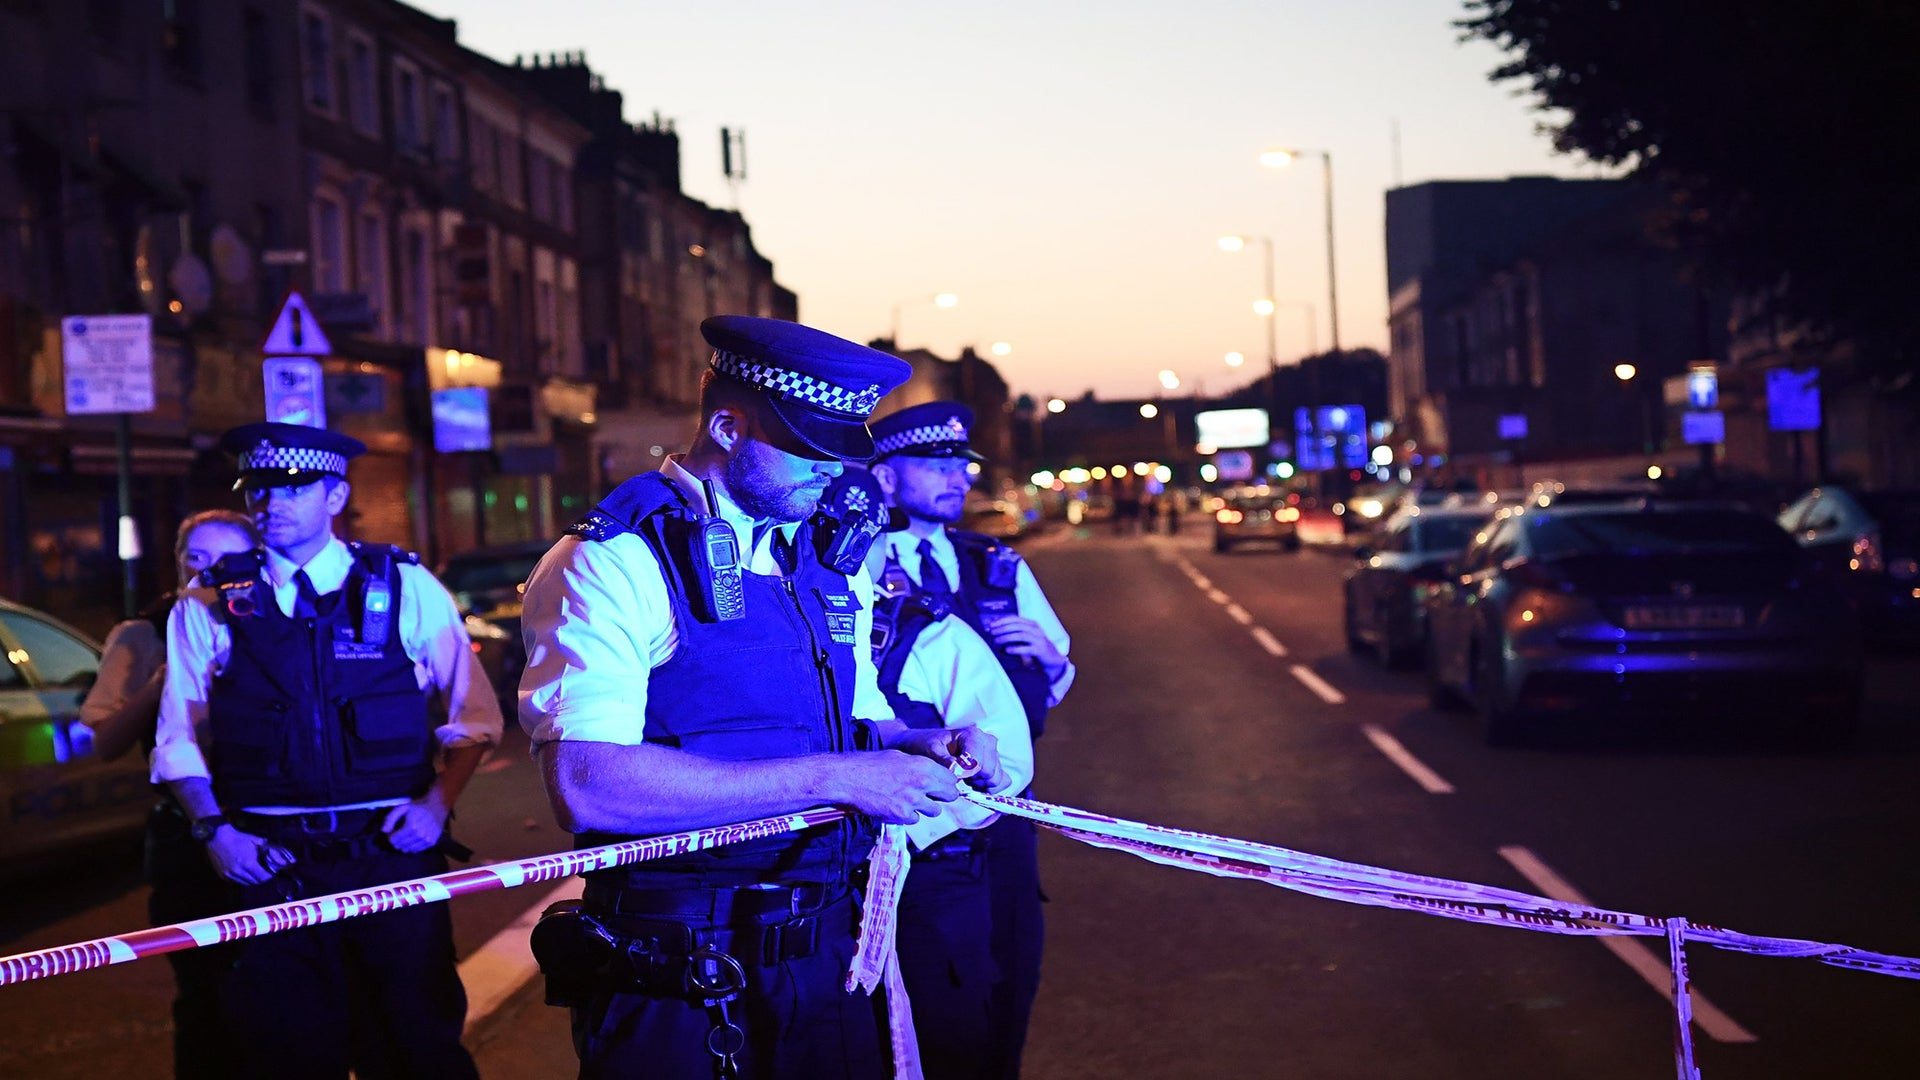 Man Plows Van Into Crowd By London Mosque, Injuring 10